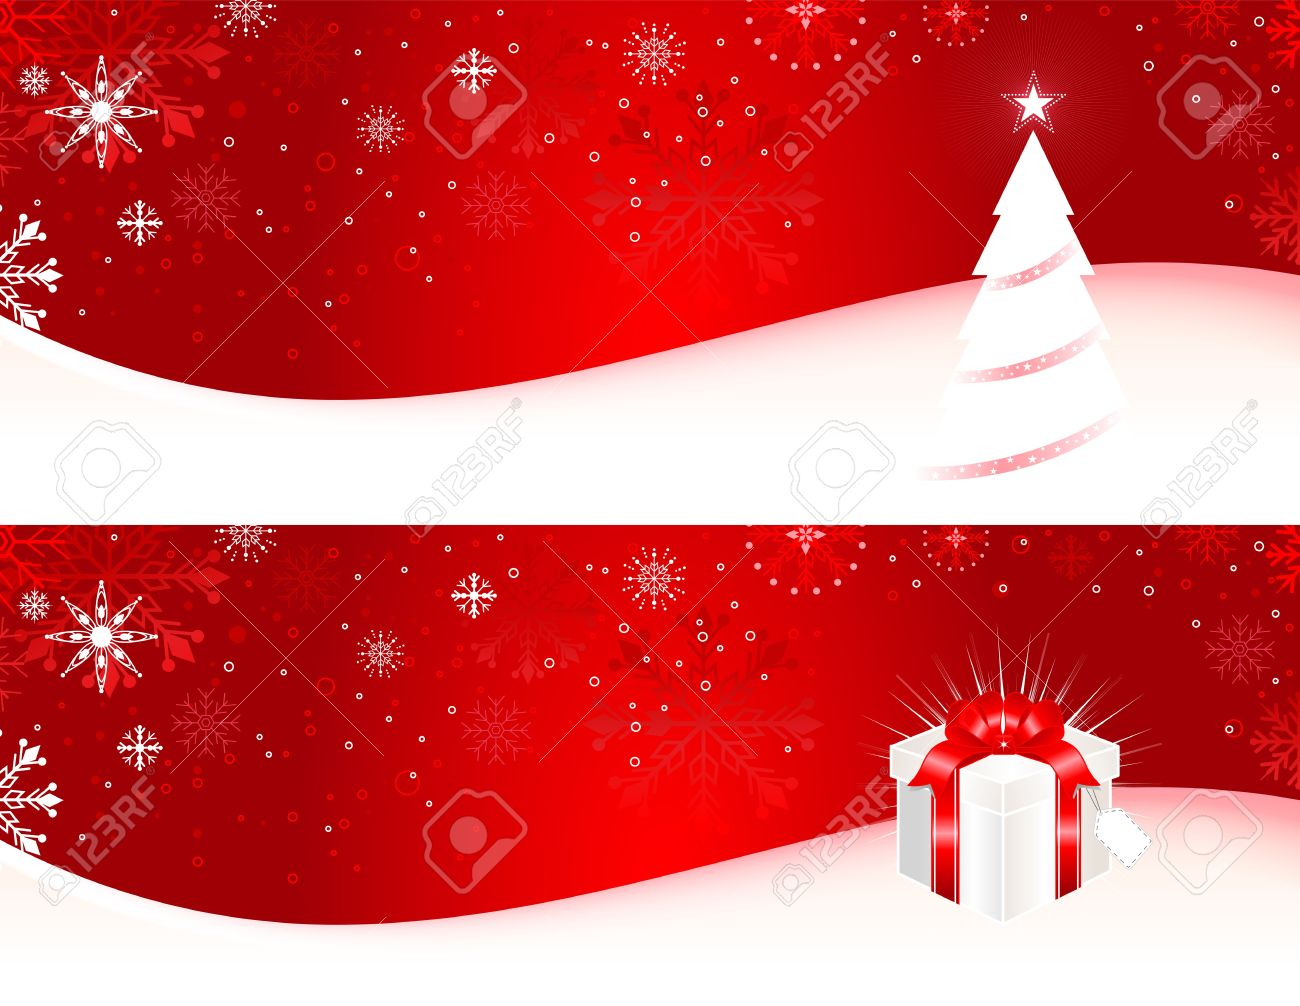 Christmas Banner With Christmas Tree, Gift Box And Snowflakes ...